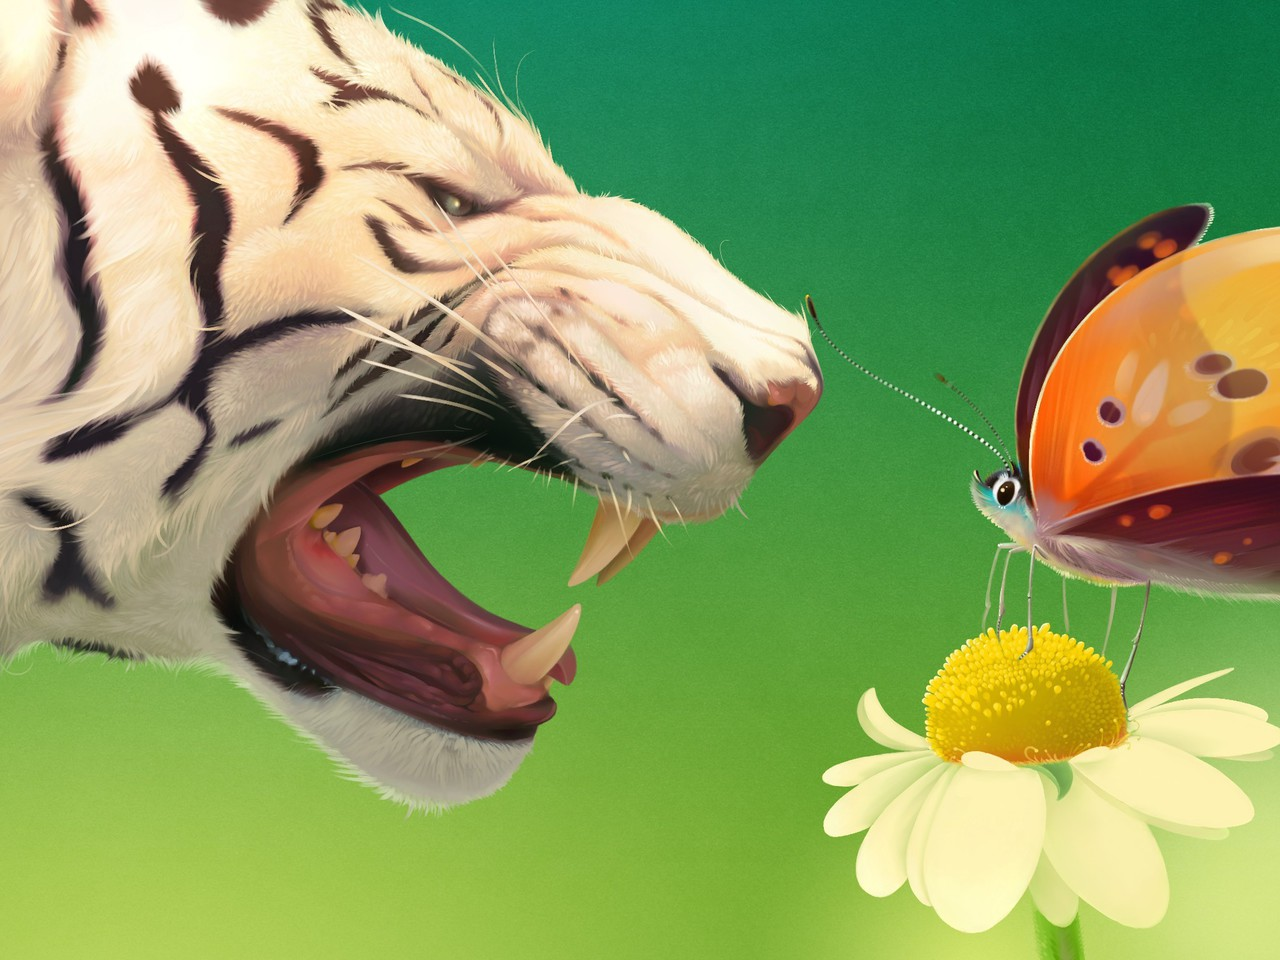 Tiger Art Wallpaper Jpg 960 800: Tigers Digital Art Artwork Butterflies Wallpaper